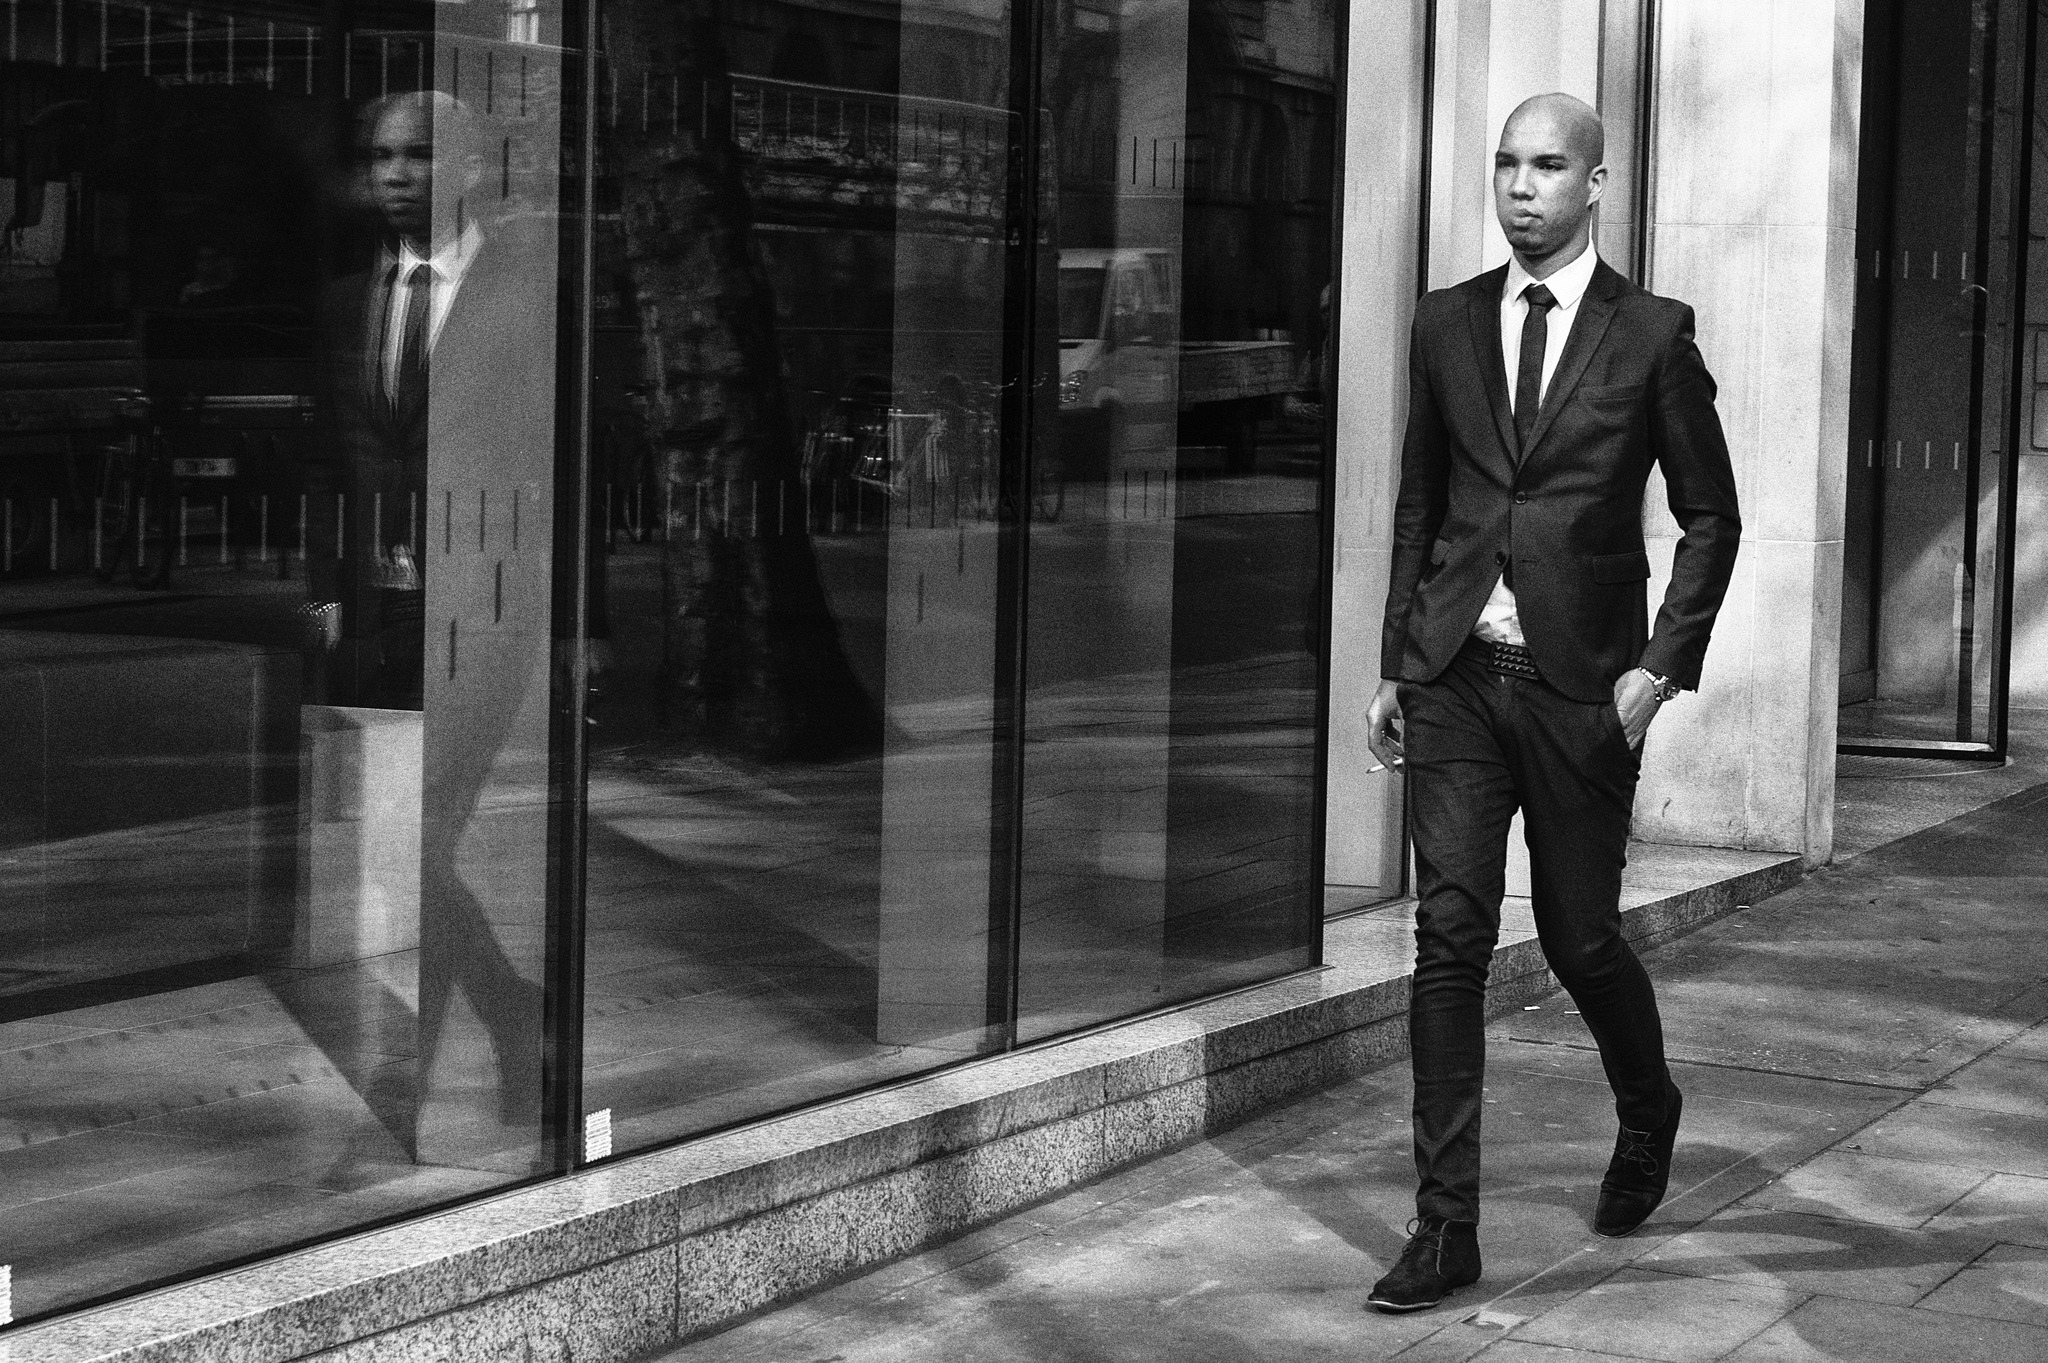 A man in a suit smoking and walking.